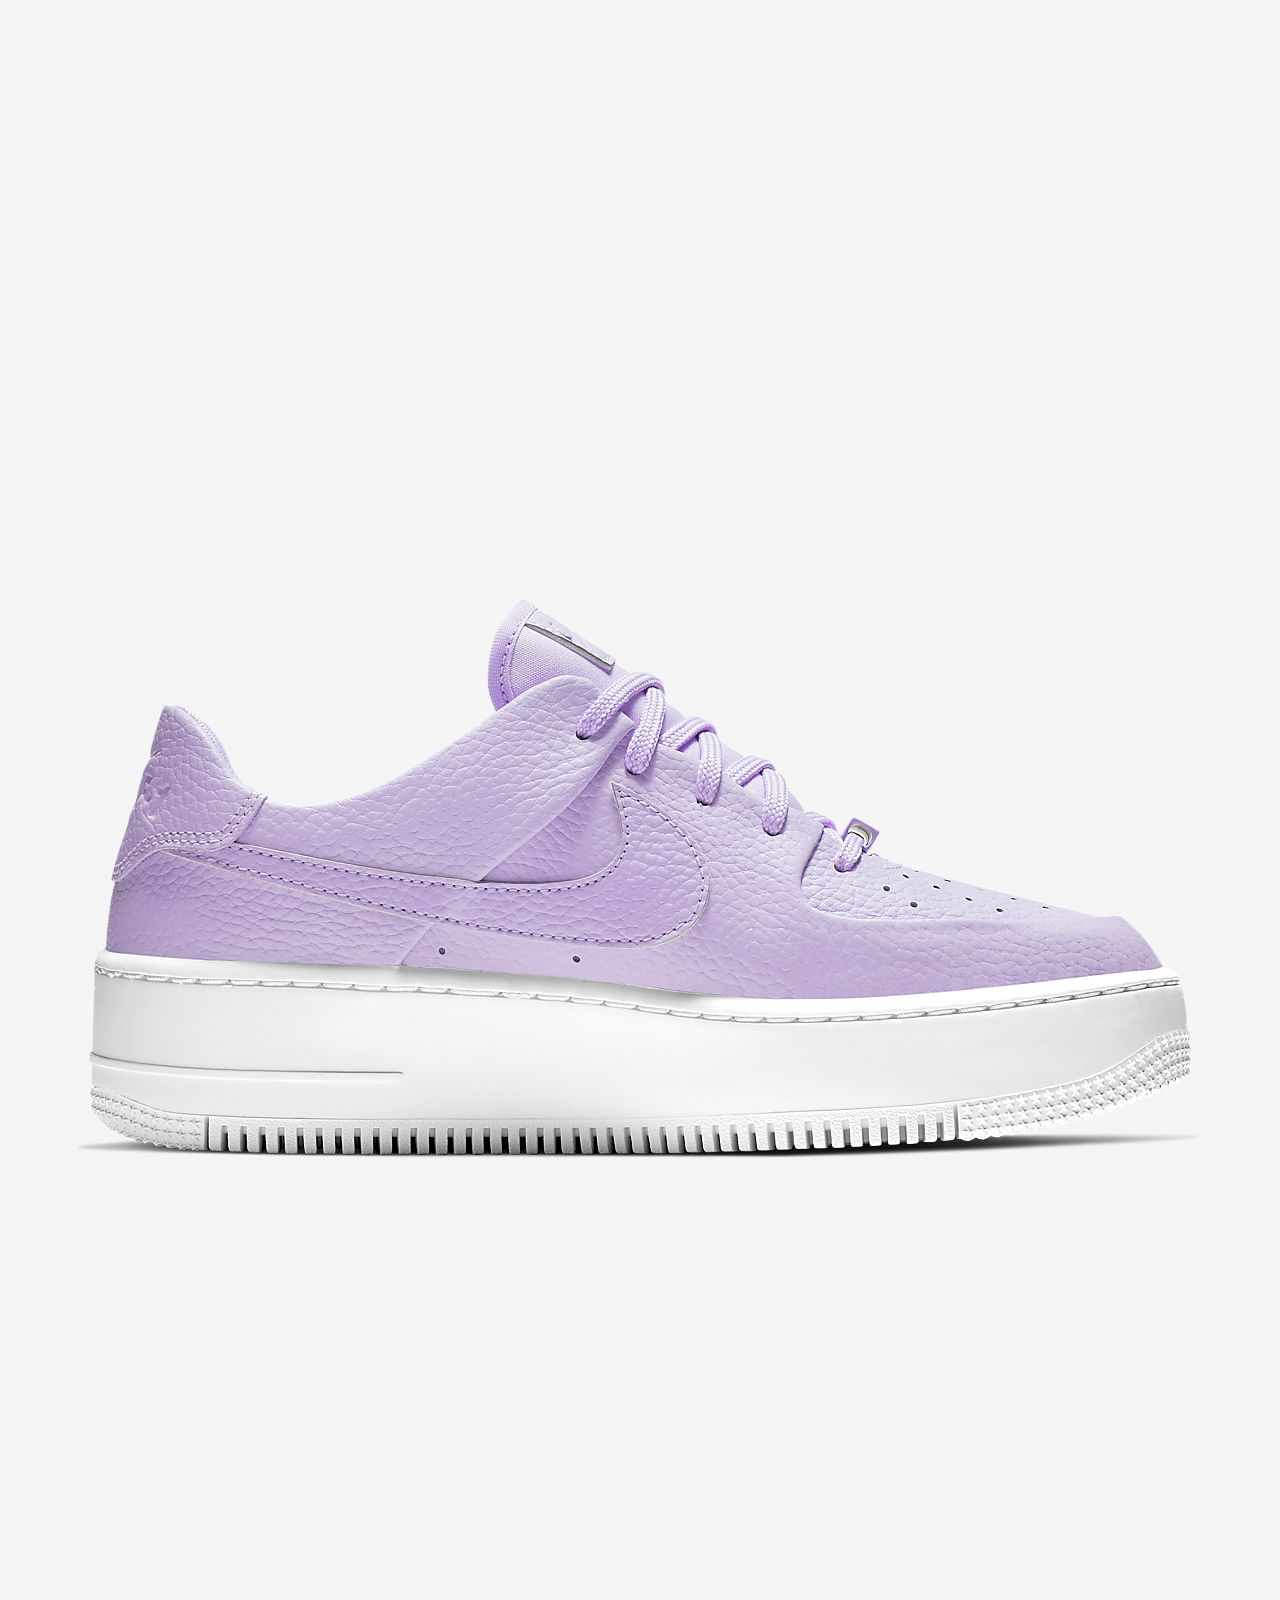 competitive price 5c8a8 d80ed ... Nike Air Force 1 Sage Low Women s Shoe